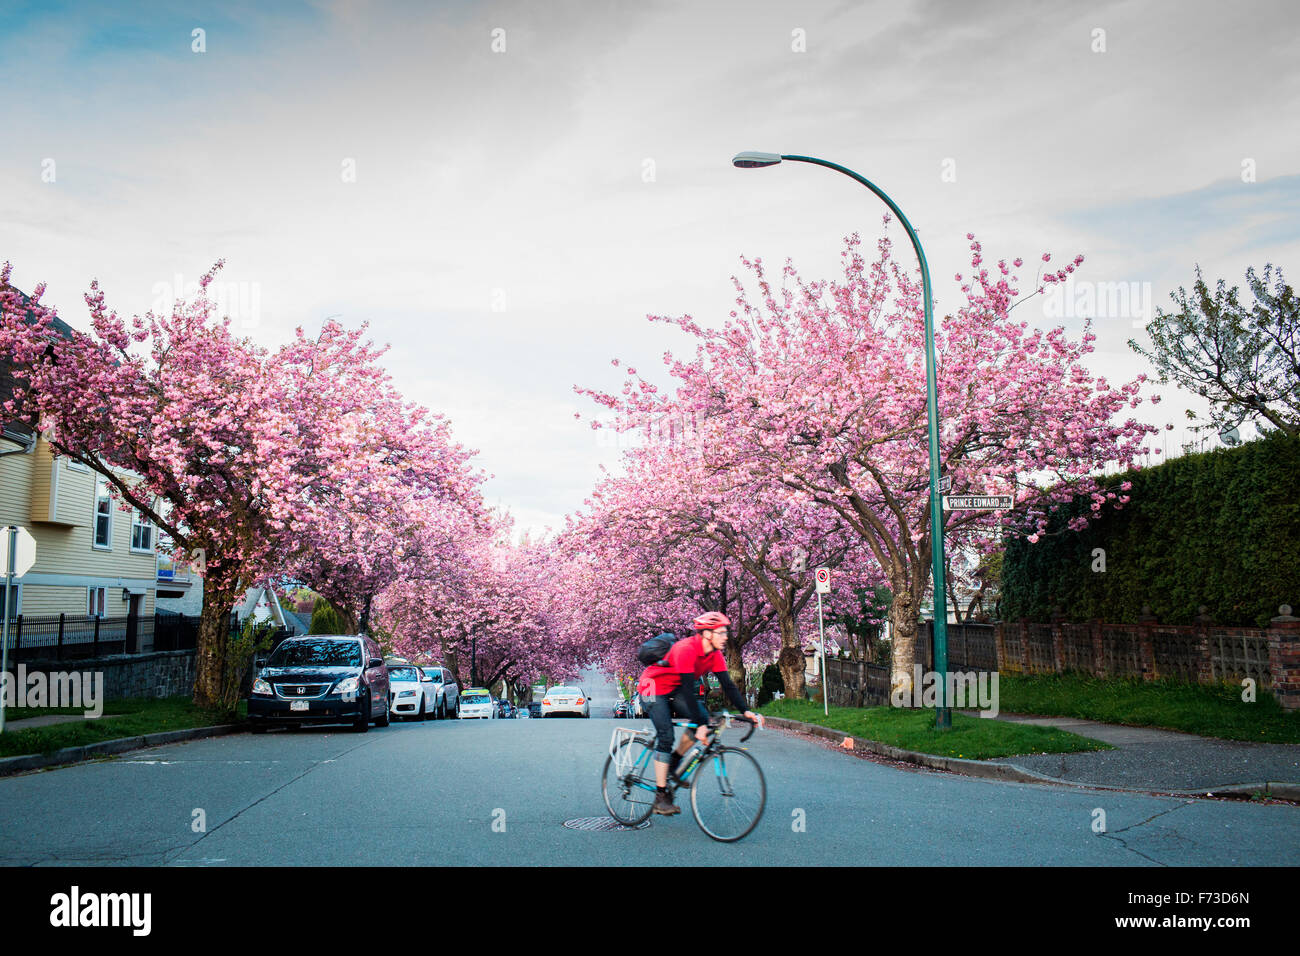 VANCOUVER, BRITISH COLUMBIA, CANADA. A bike commuter in red rides down a residential street with cherry blossoms - Stock Image